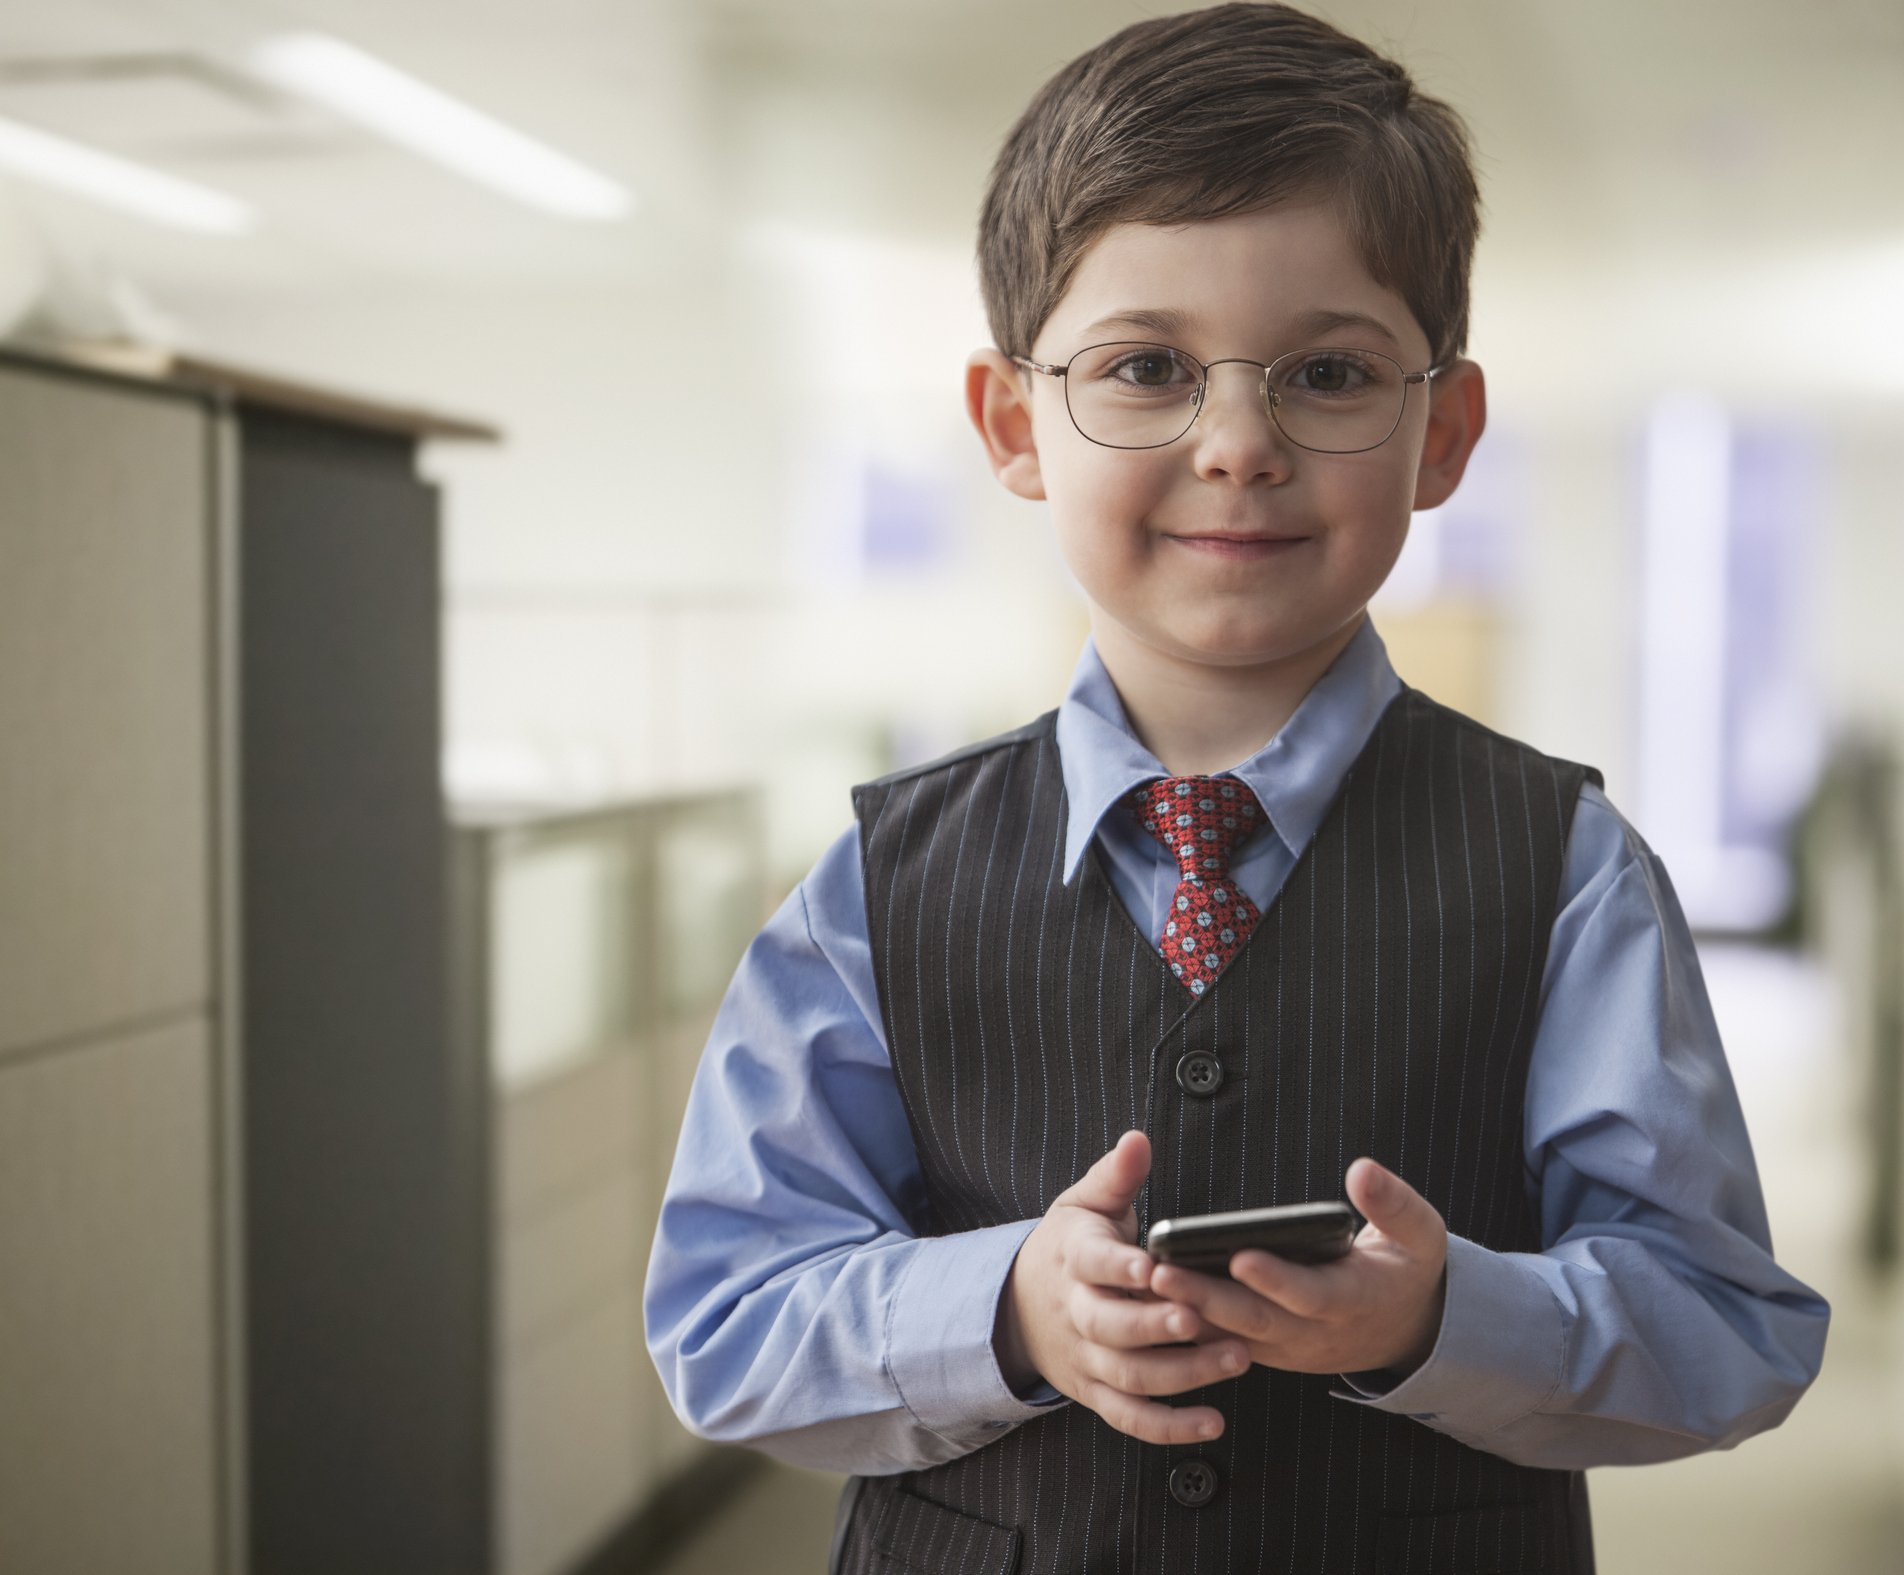 Photo of boy wearing businessman outfit in office   Photo: Getty Images